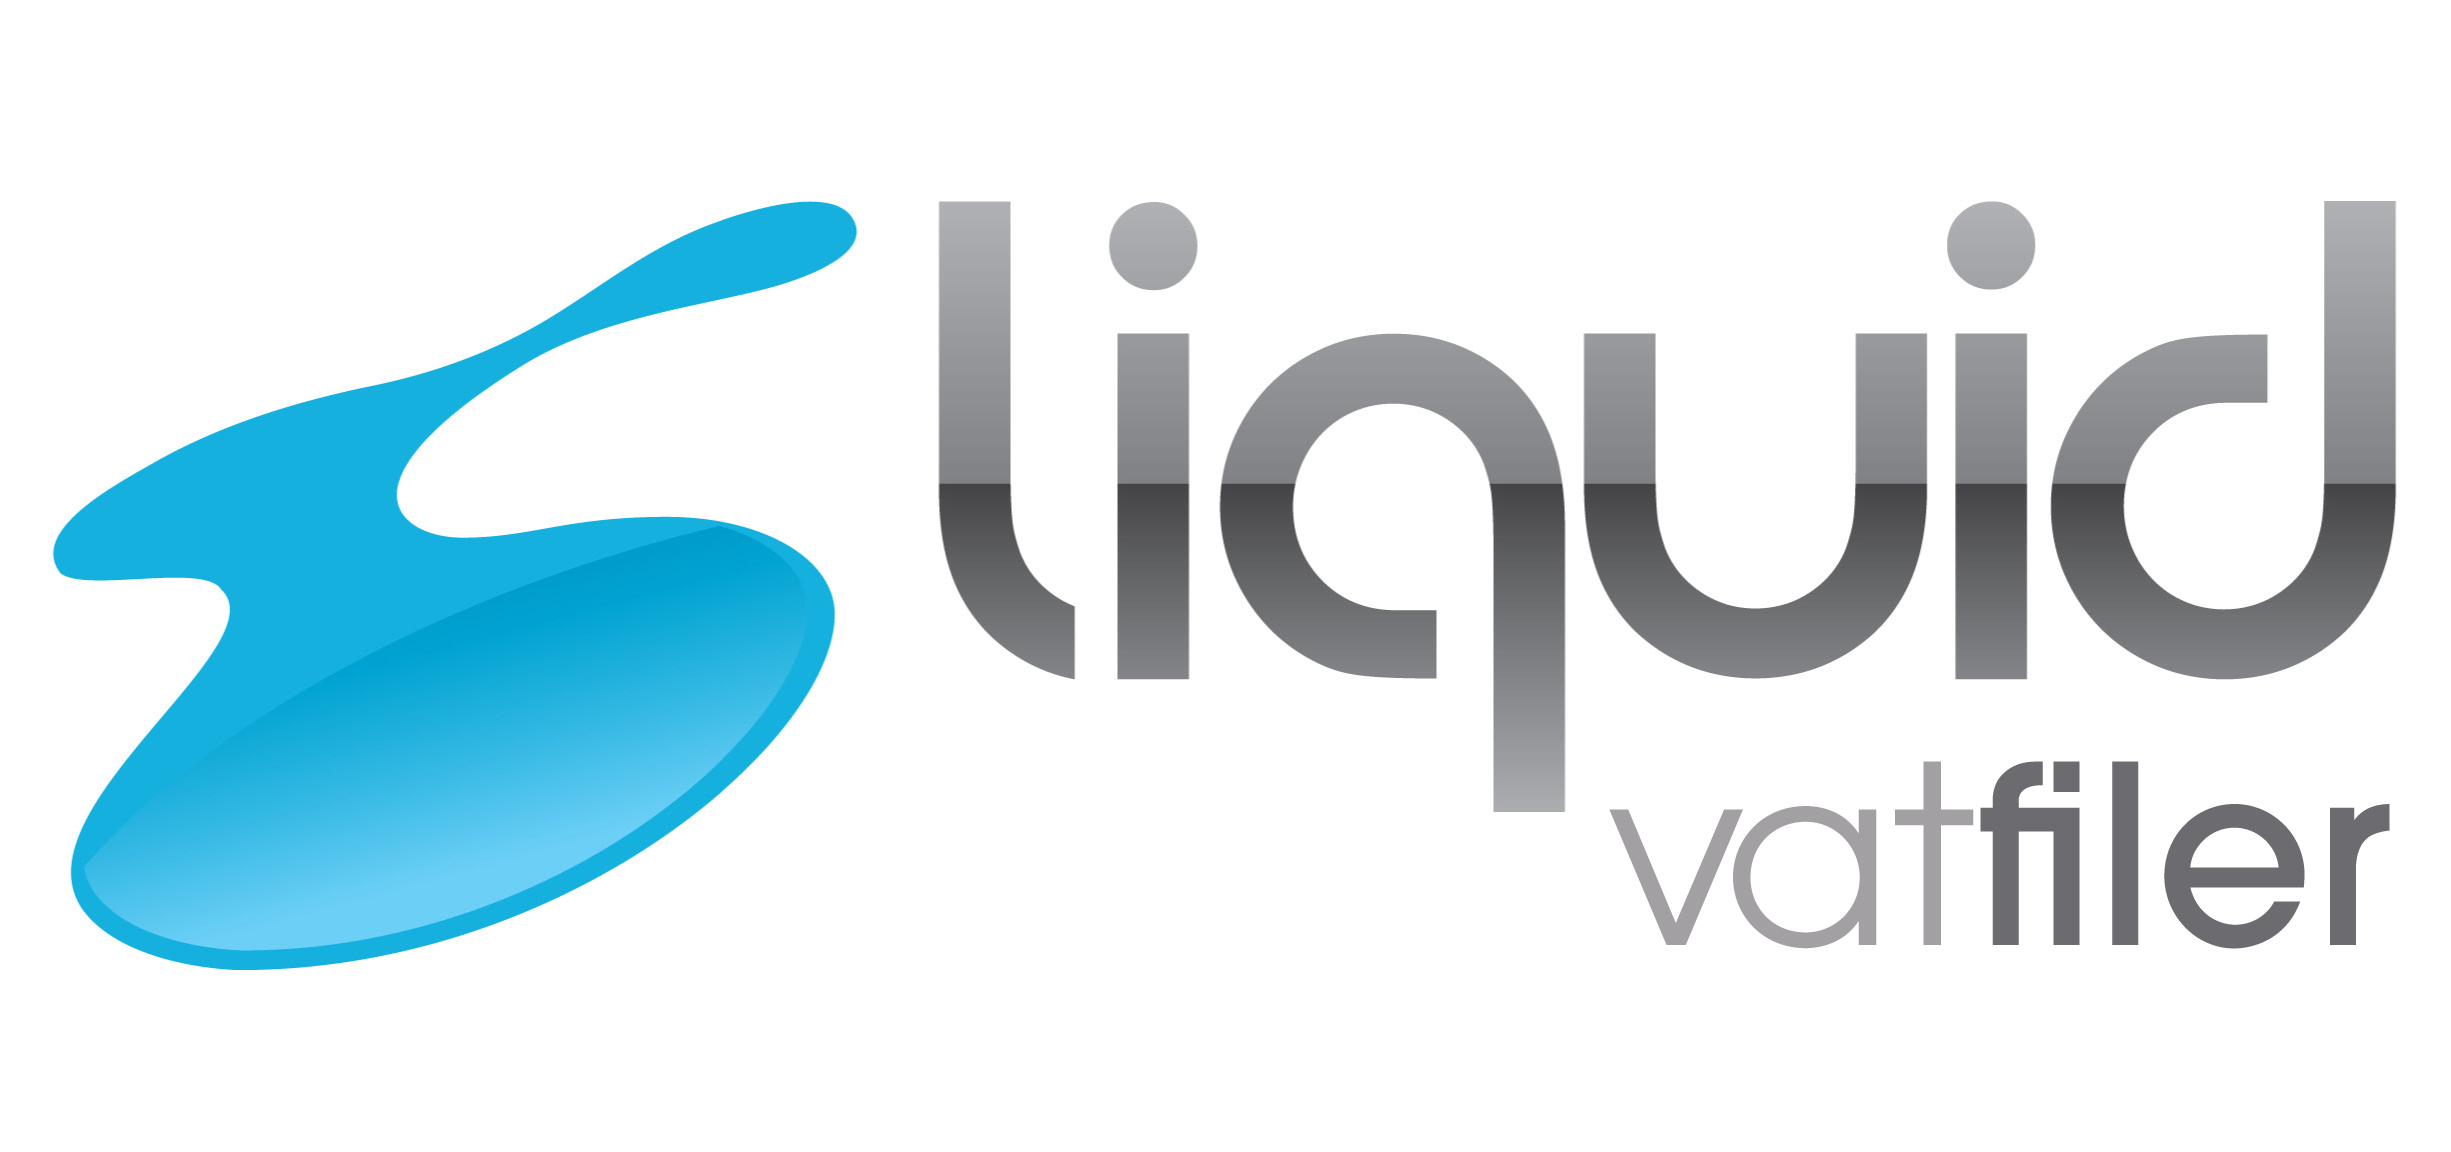 Liquid Vat filer Logo